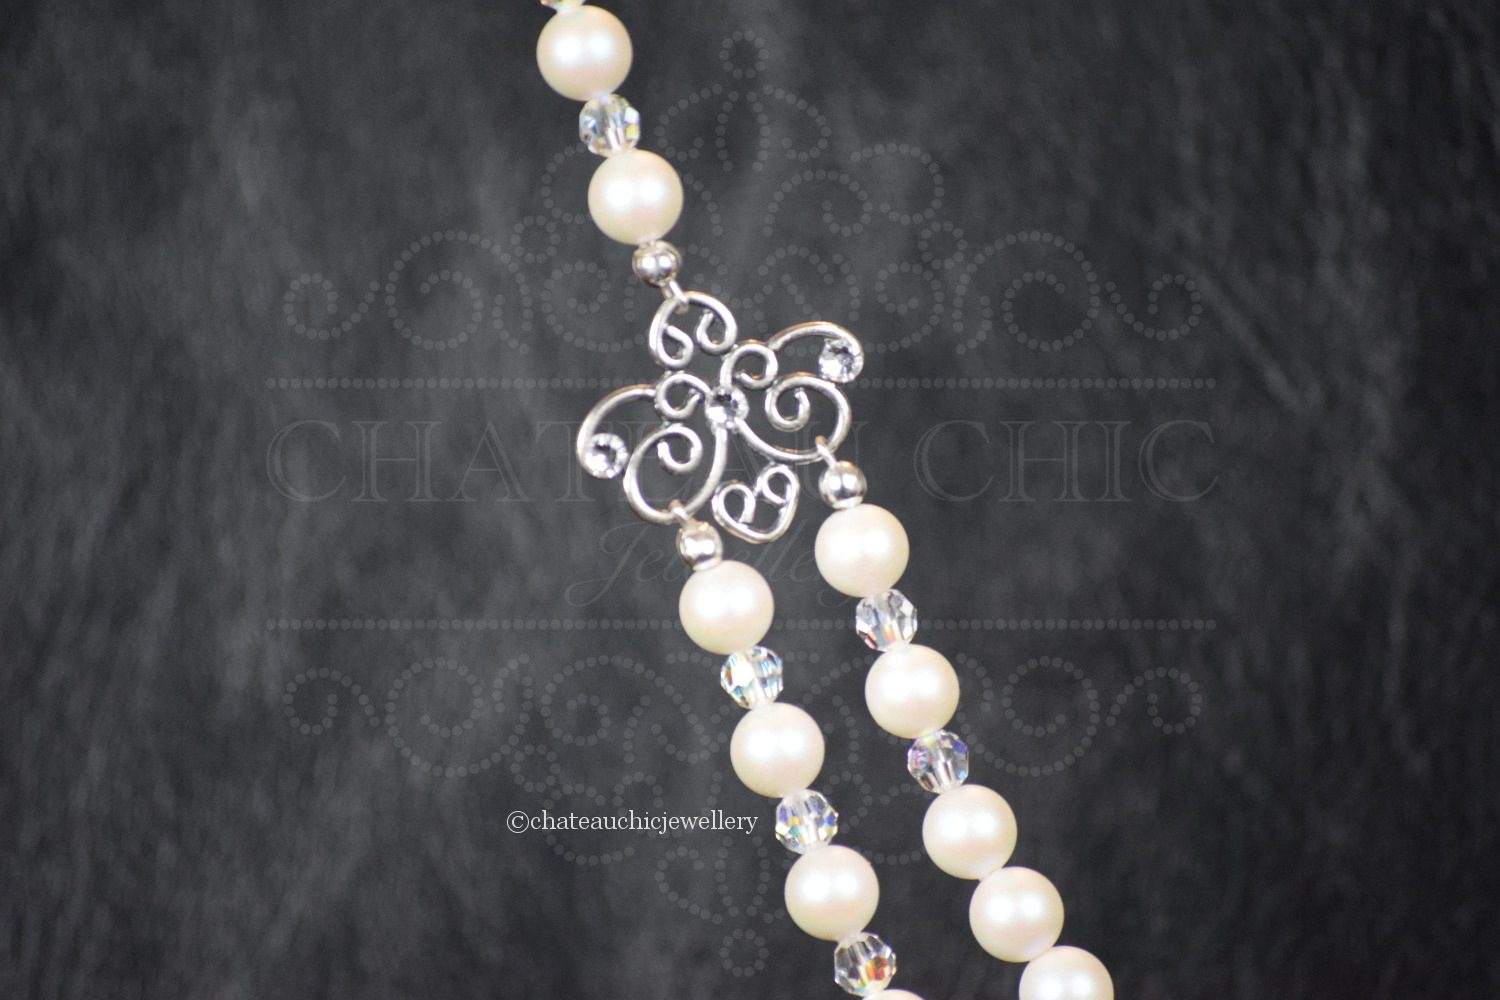 Coupe De Champagne Close Up Chateau Chic Jewellery